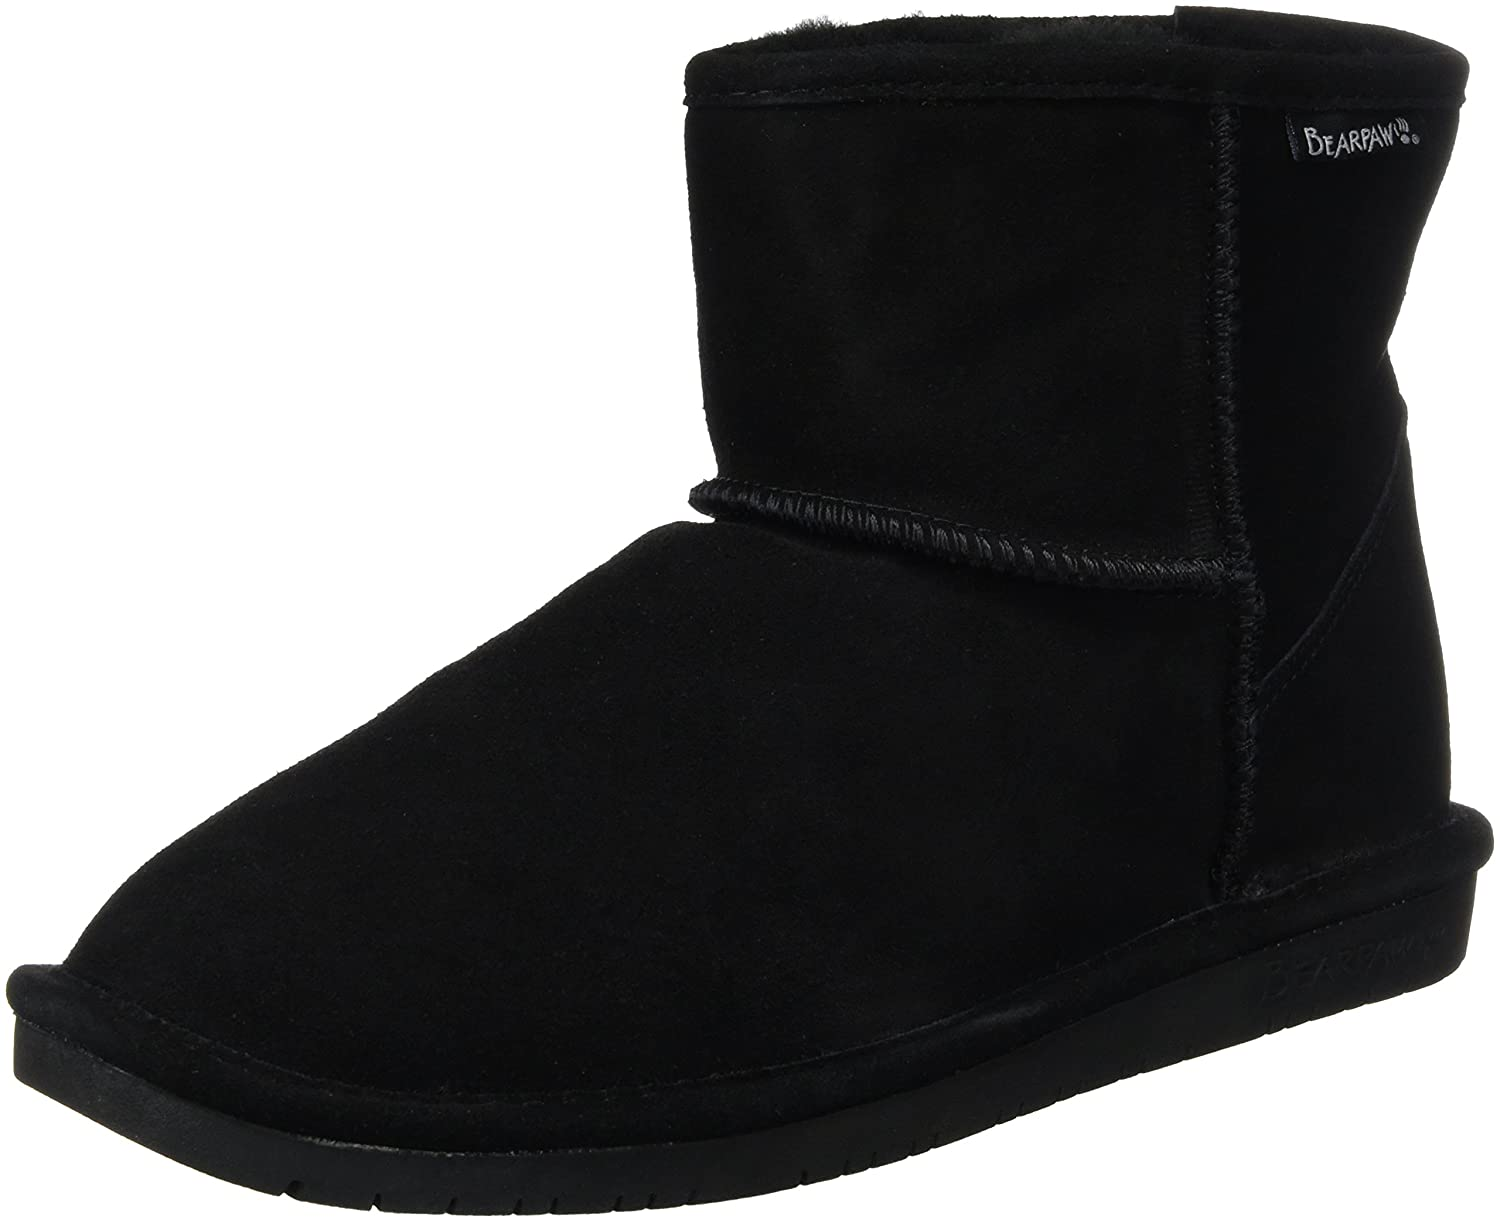 BEARPAW Demi Fashion Boot B00UCNFVUY 12 B(M) US|Black